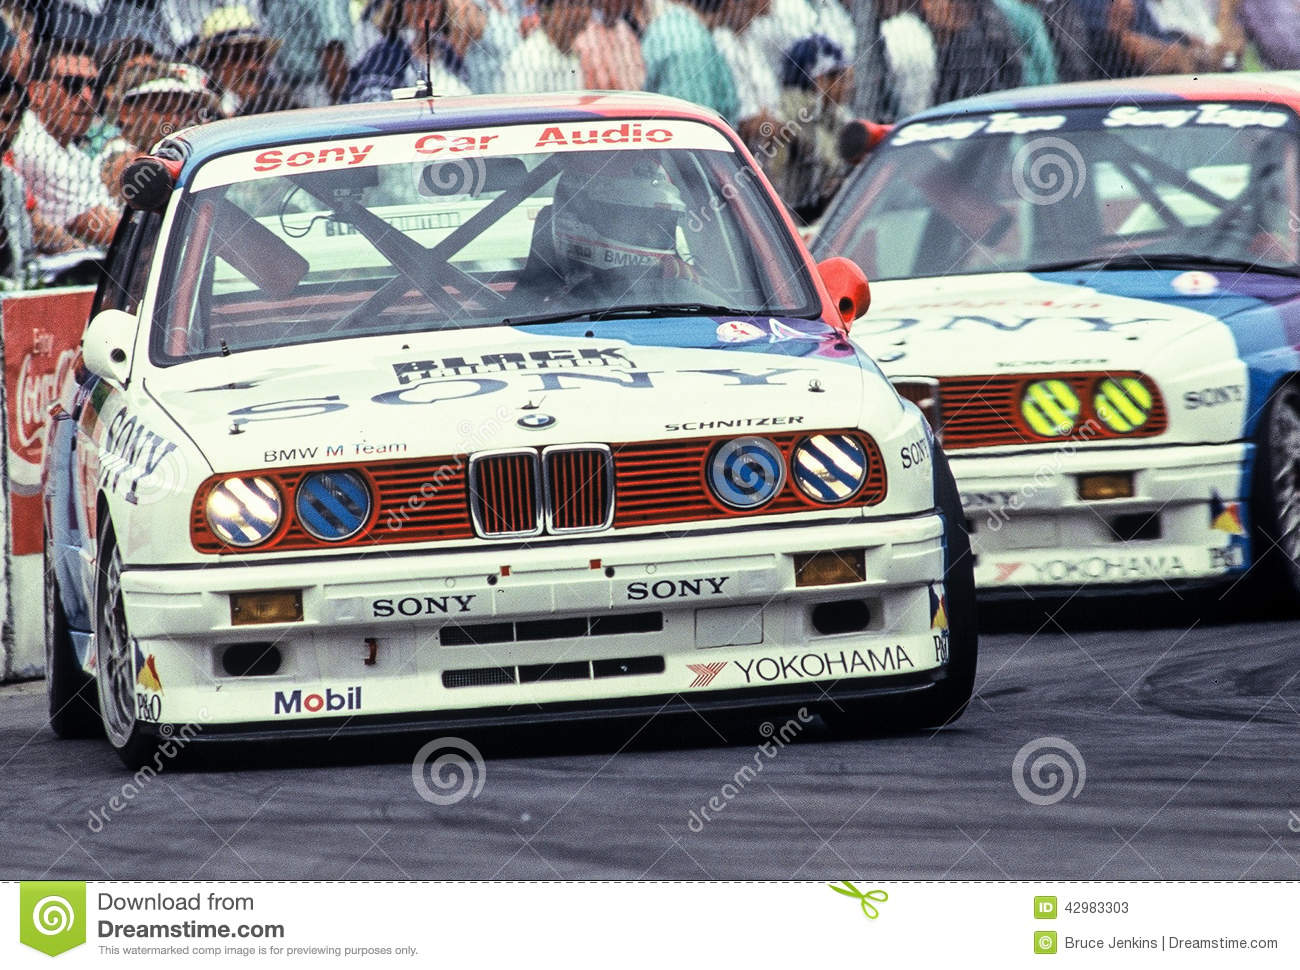 2 Factory Works BMW M3 E30 Race Cars Compete At The Wellington Street Nissan Mobil 500 In New Zealand